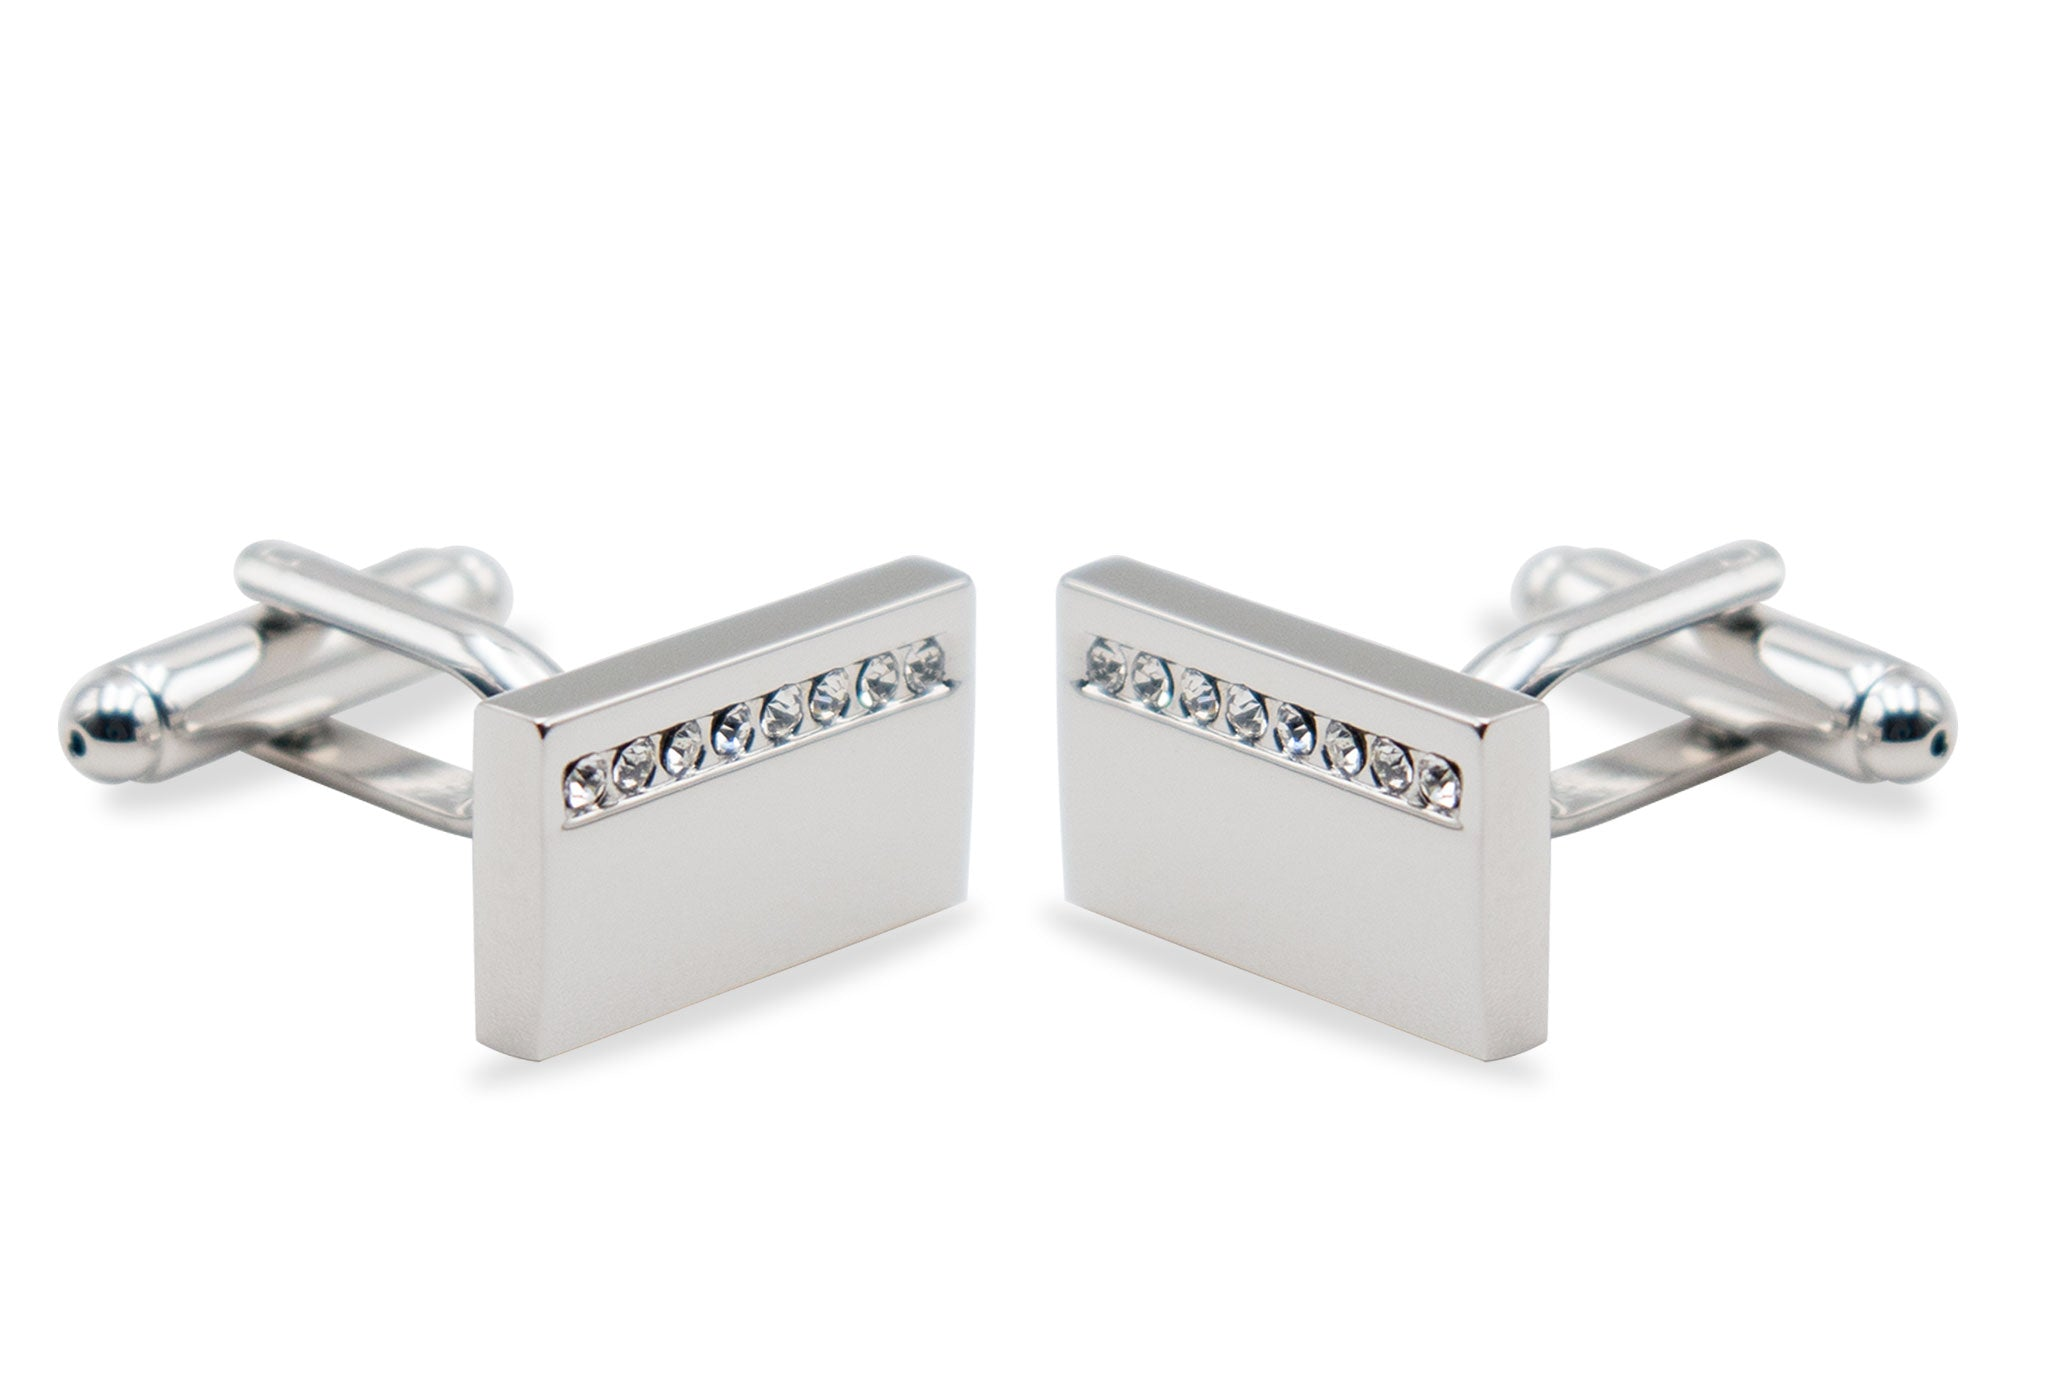 Guarenas Chrome Diamonte Cufflinks